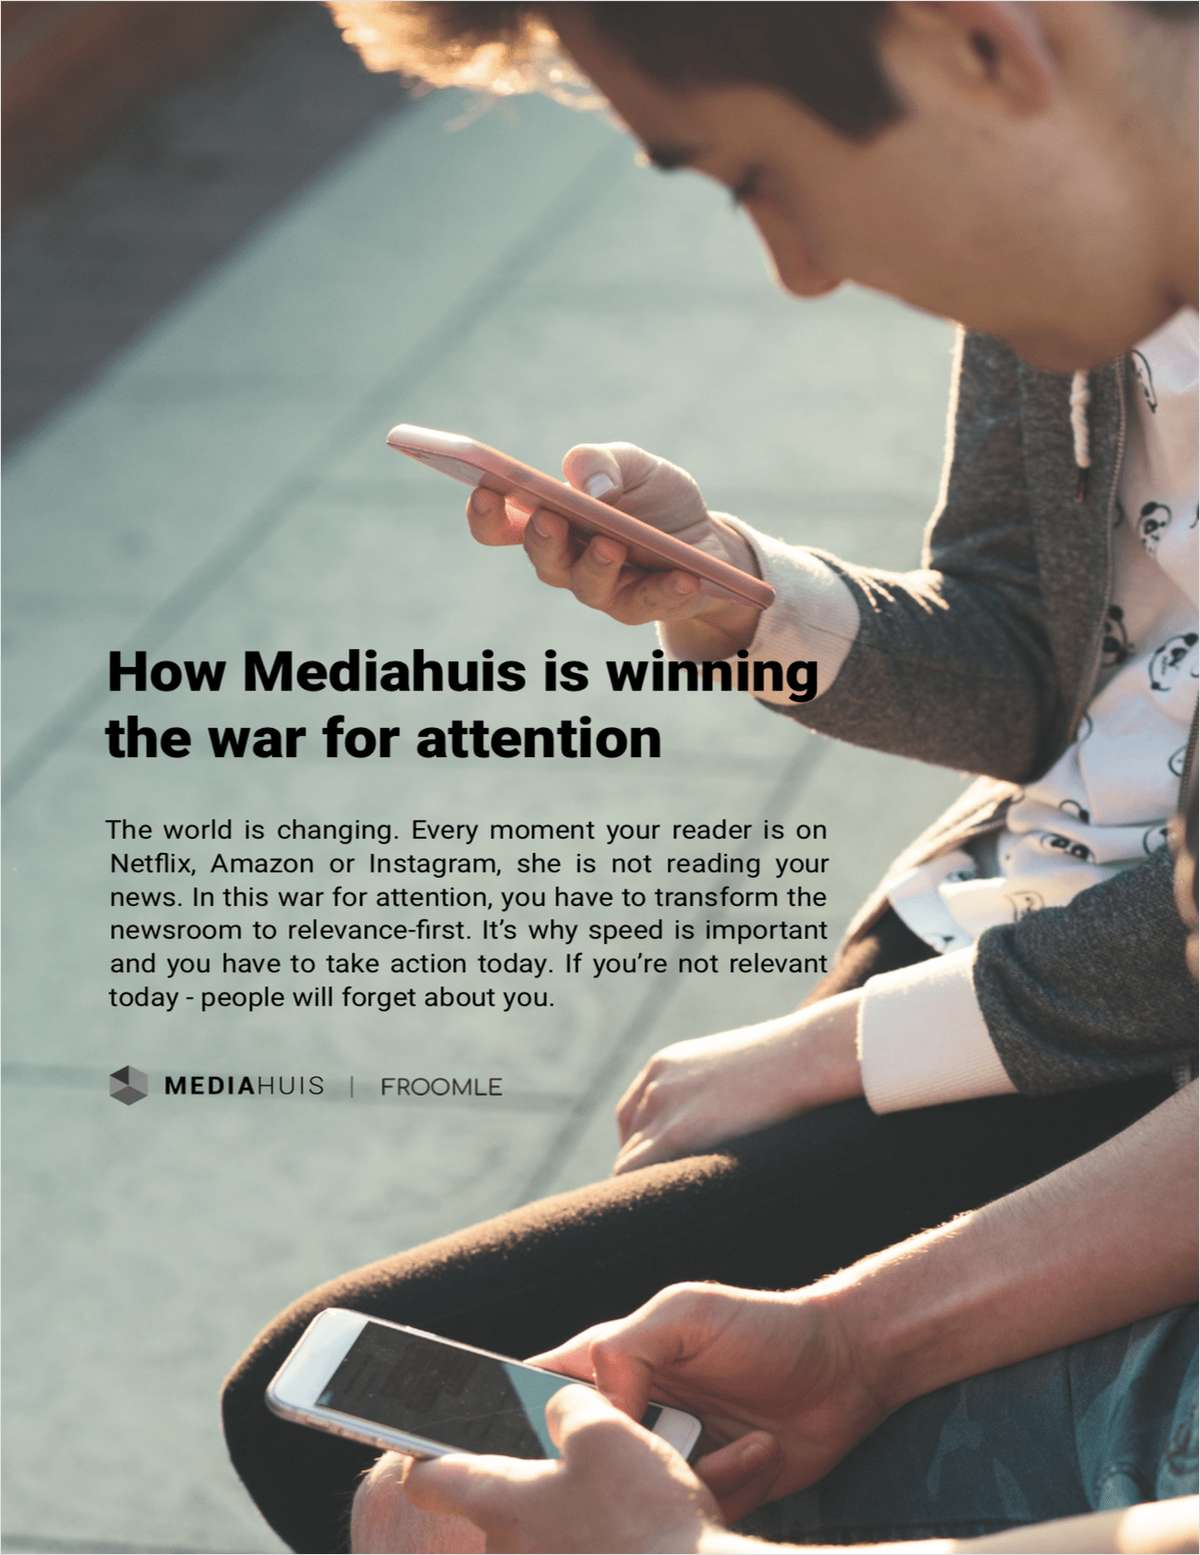 How Mediahuis Is Winning the War for Attention?